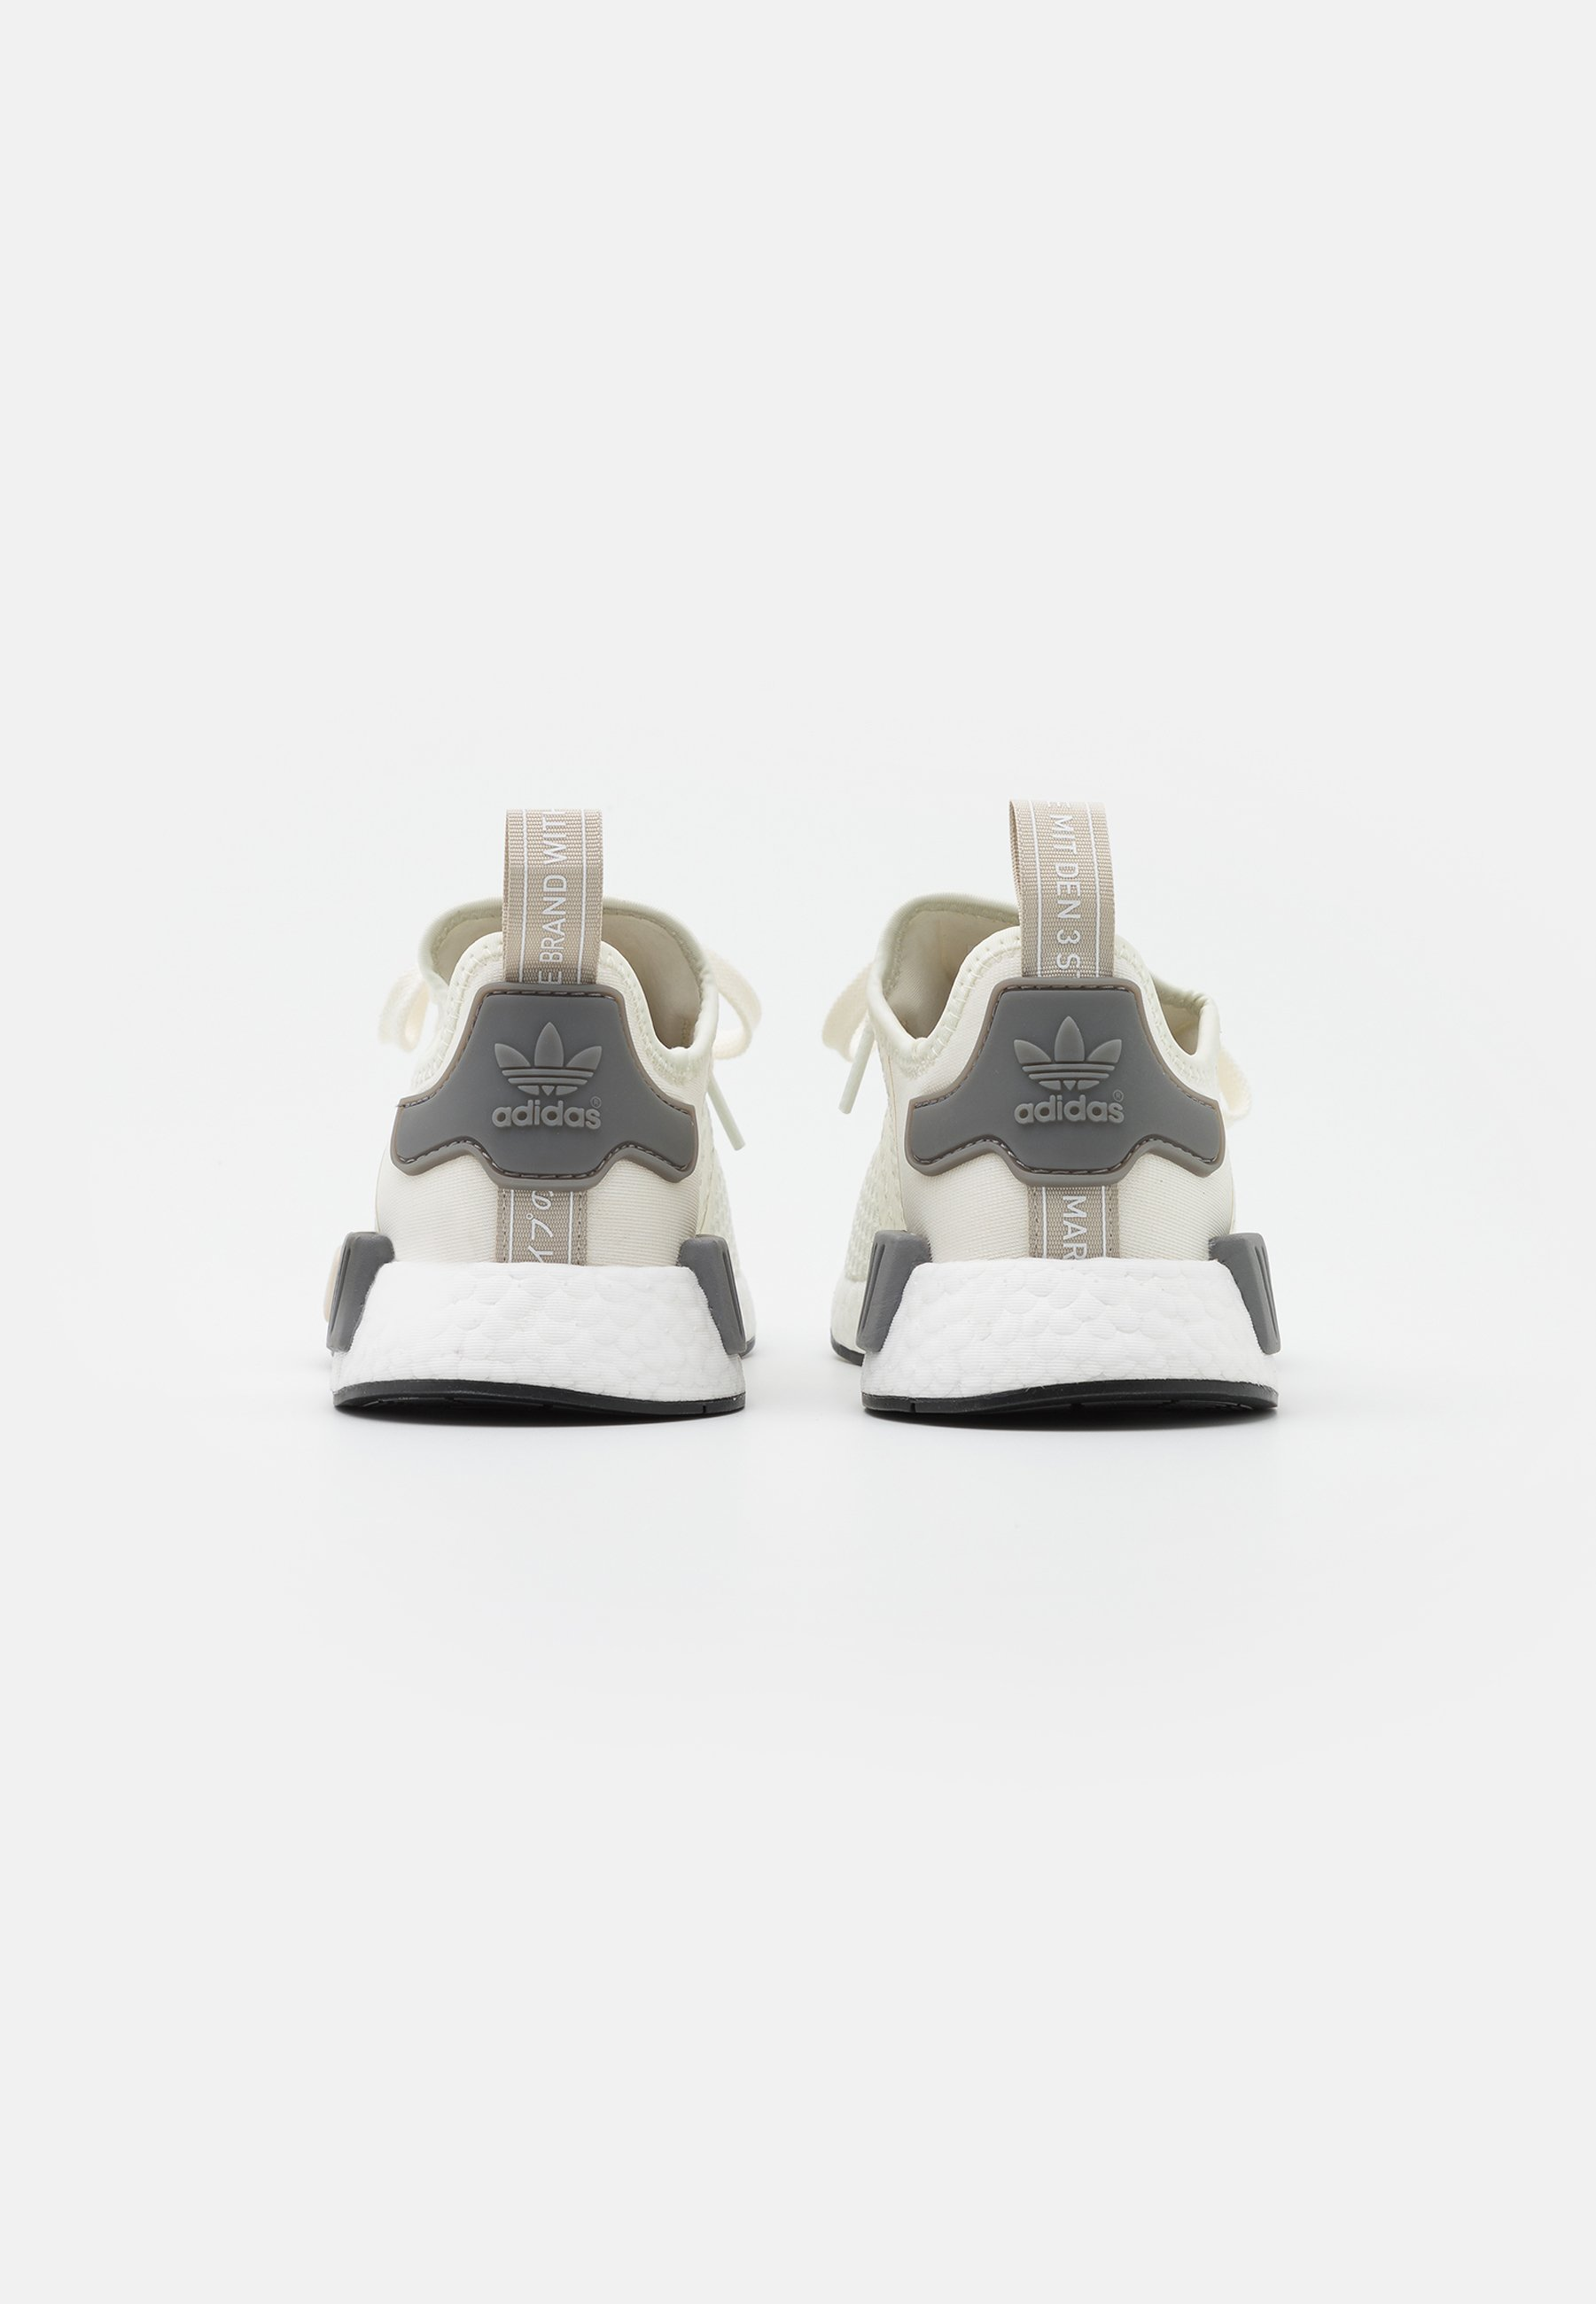 Adidas Originals Nmd_r1 Boost Sports Inspired Shoes - Joggesko Offwhite/core Brown/grey Three/offwhite